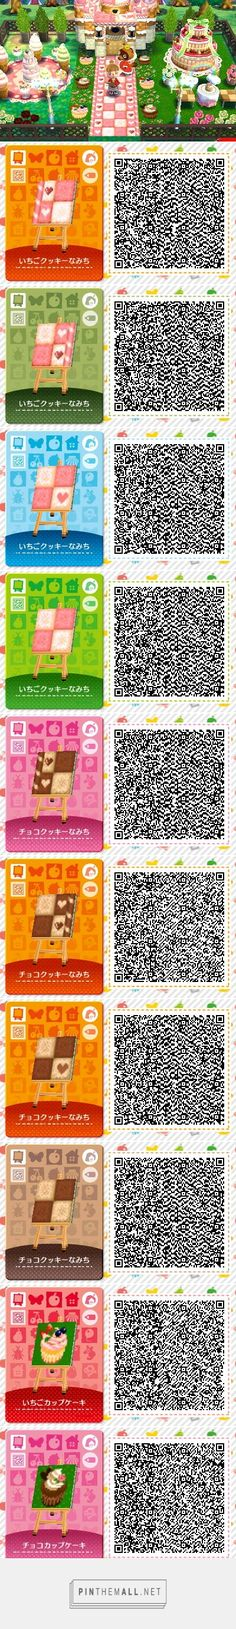 Sweets themed path and cupcakes tiles Animal Crossing Qr, Types Of Animals, Cute Animals, Acnl Paths, Awsome Pictures, Ac New Leaf, Happy Home Designer, Qr Codes, Pixel Art